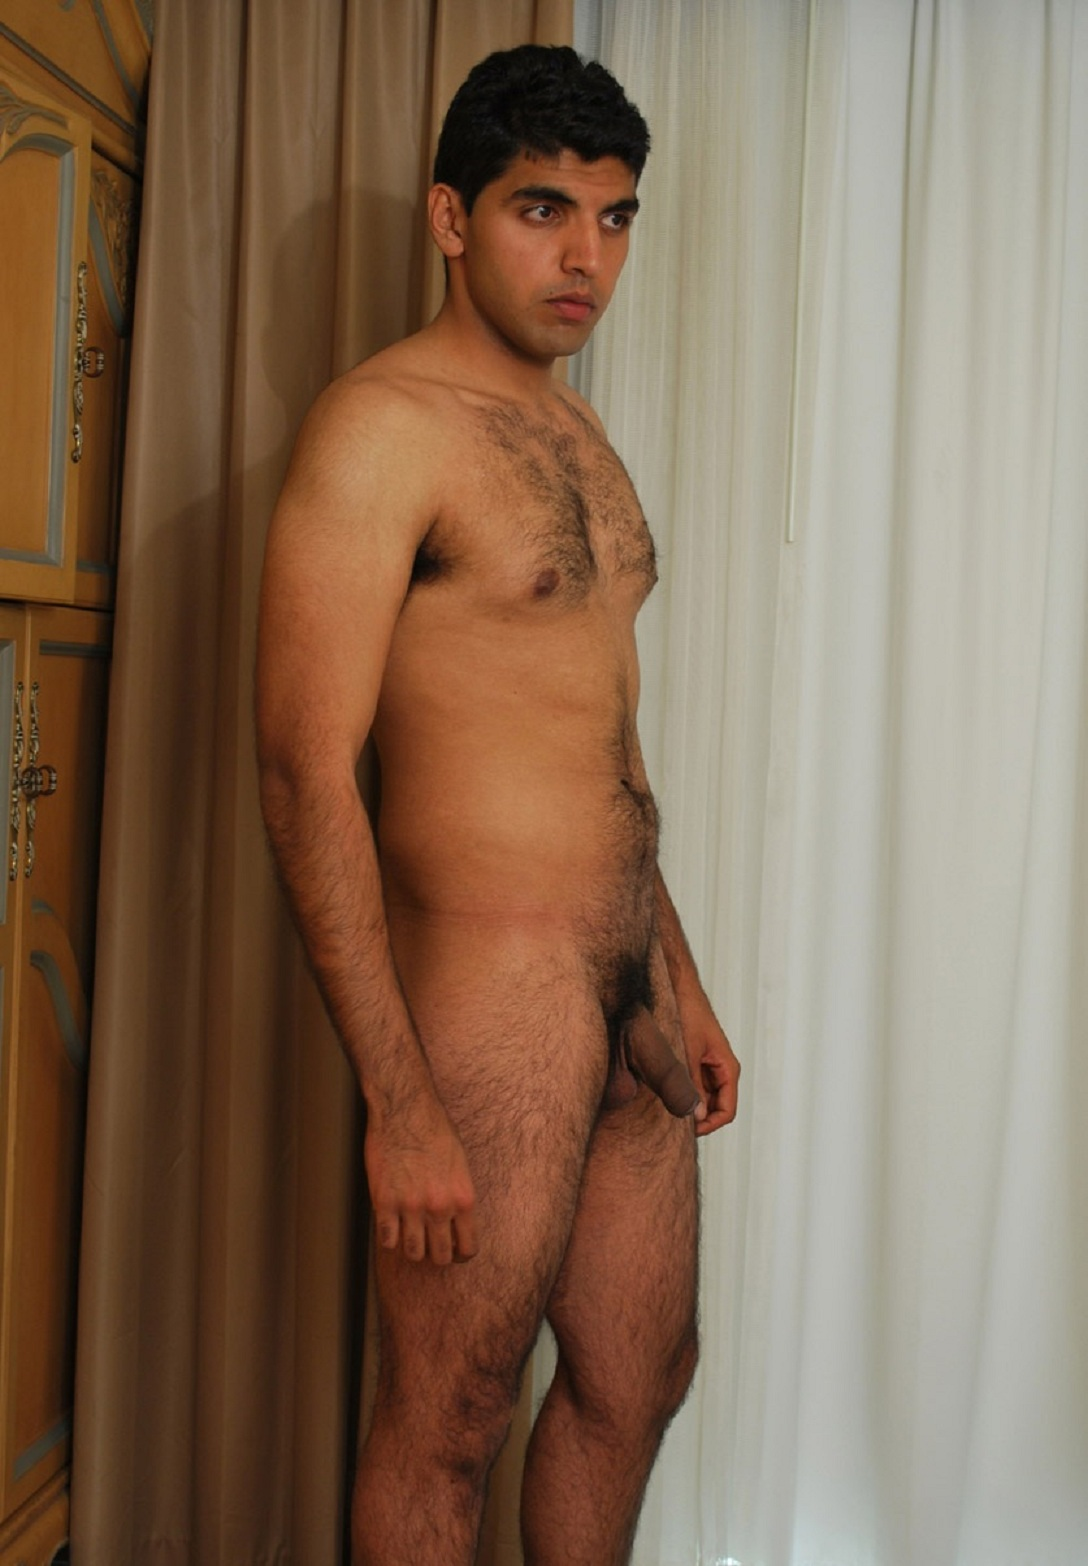 Photo - Indian  Desi Gay Men Pictures  Page 10  Lpsg-7964